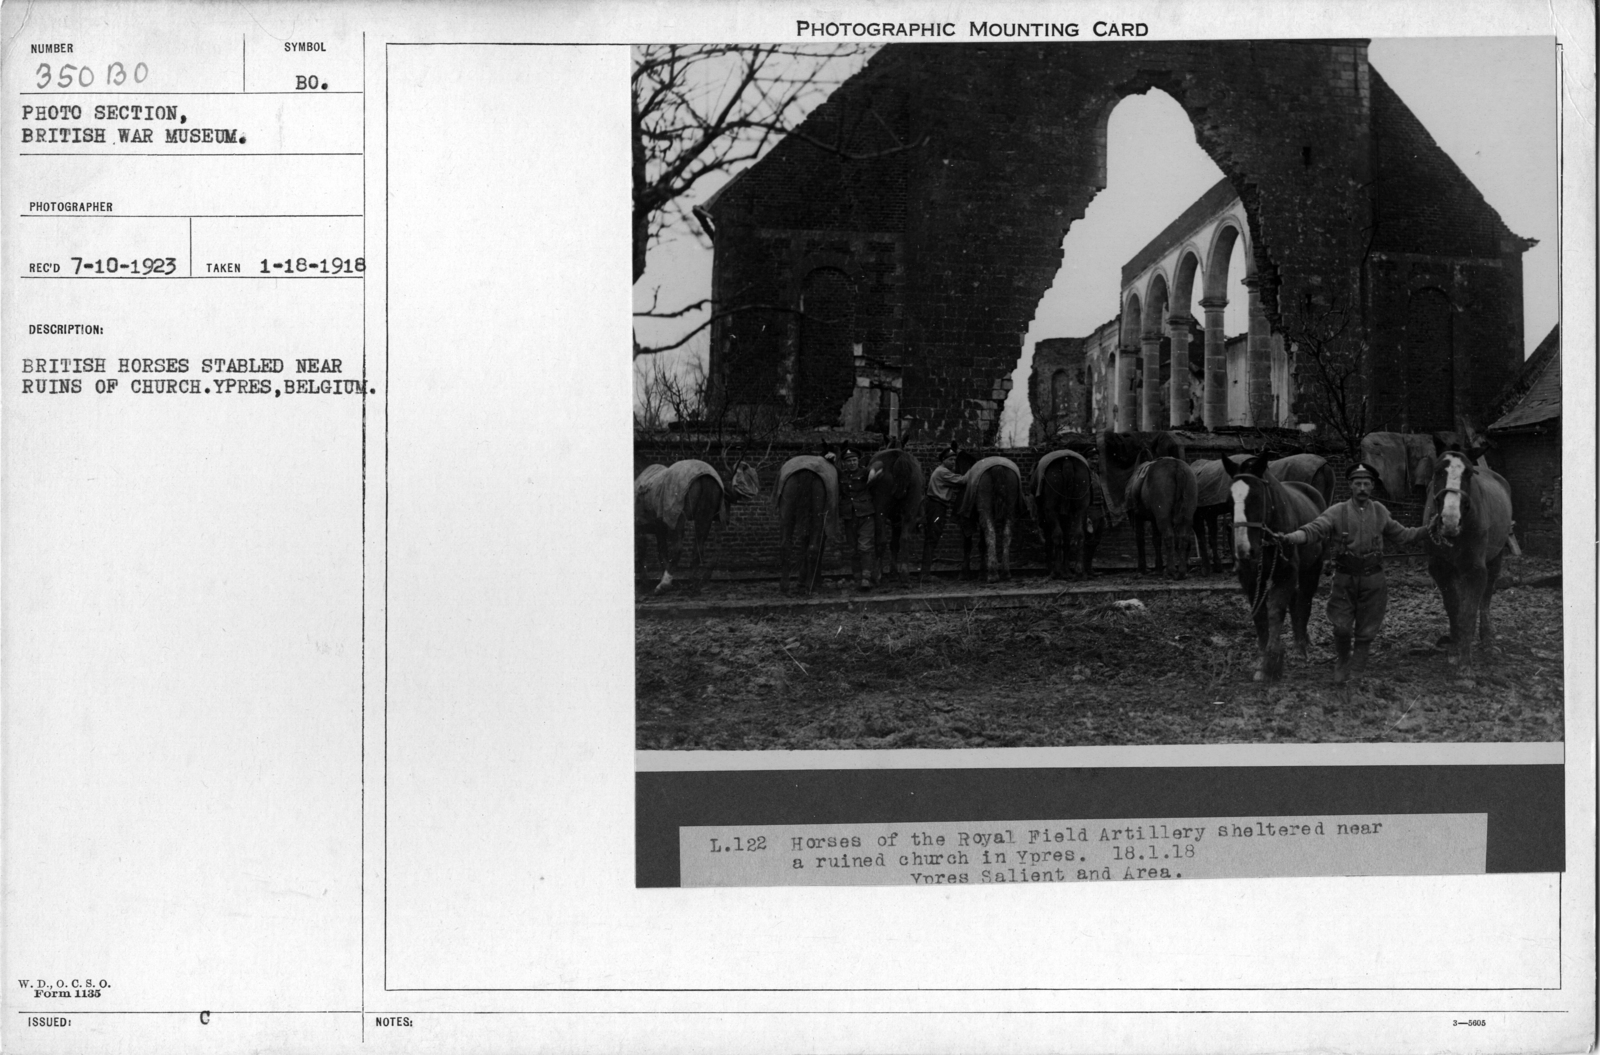 British horses stabled near ruins of church. Ypres, Belgium; 1/18/1918